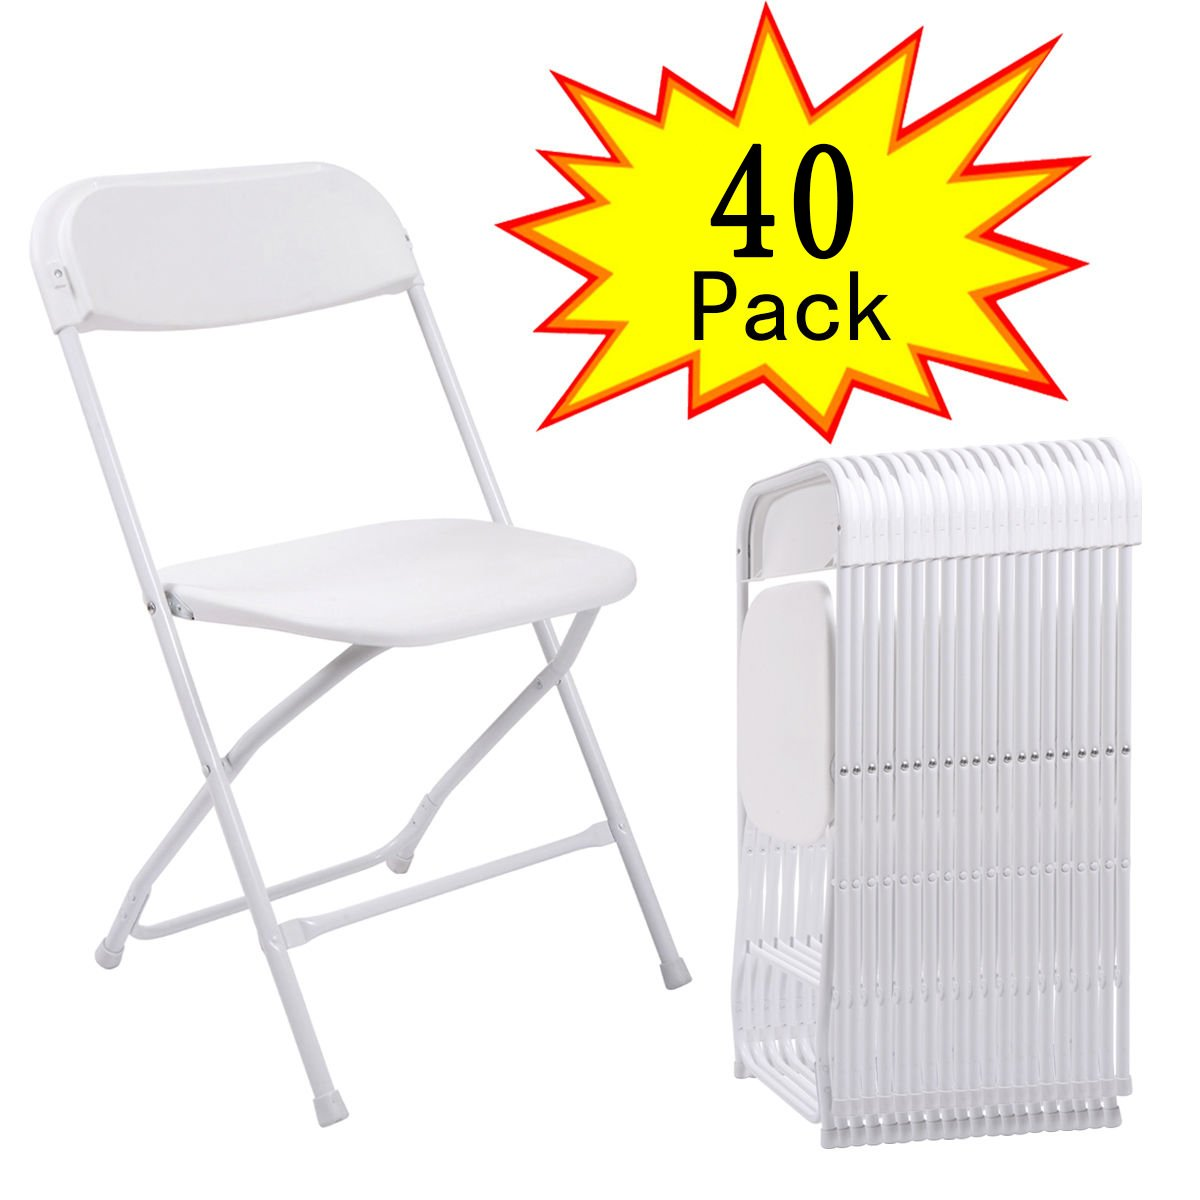 JAXPETY 40PCS Plastic Folding Chairs Wedding Party Event Chair Commercial White